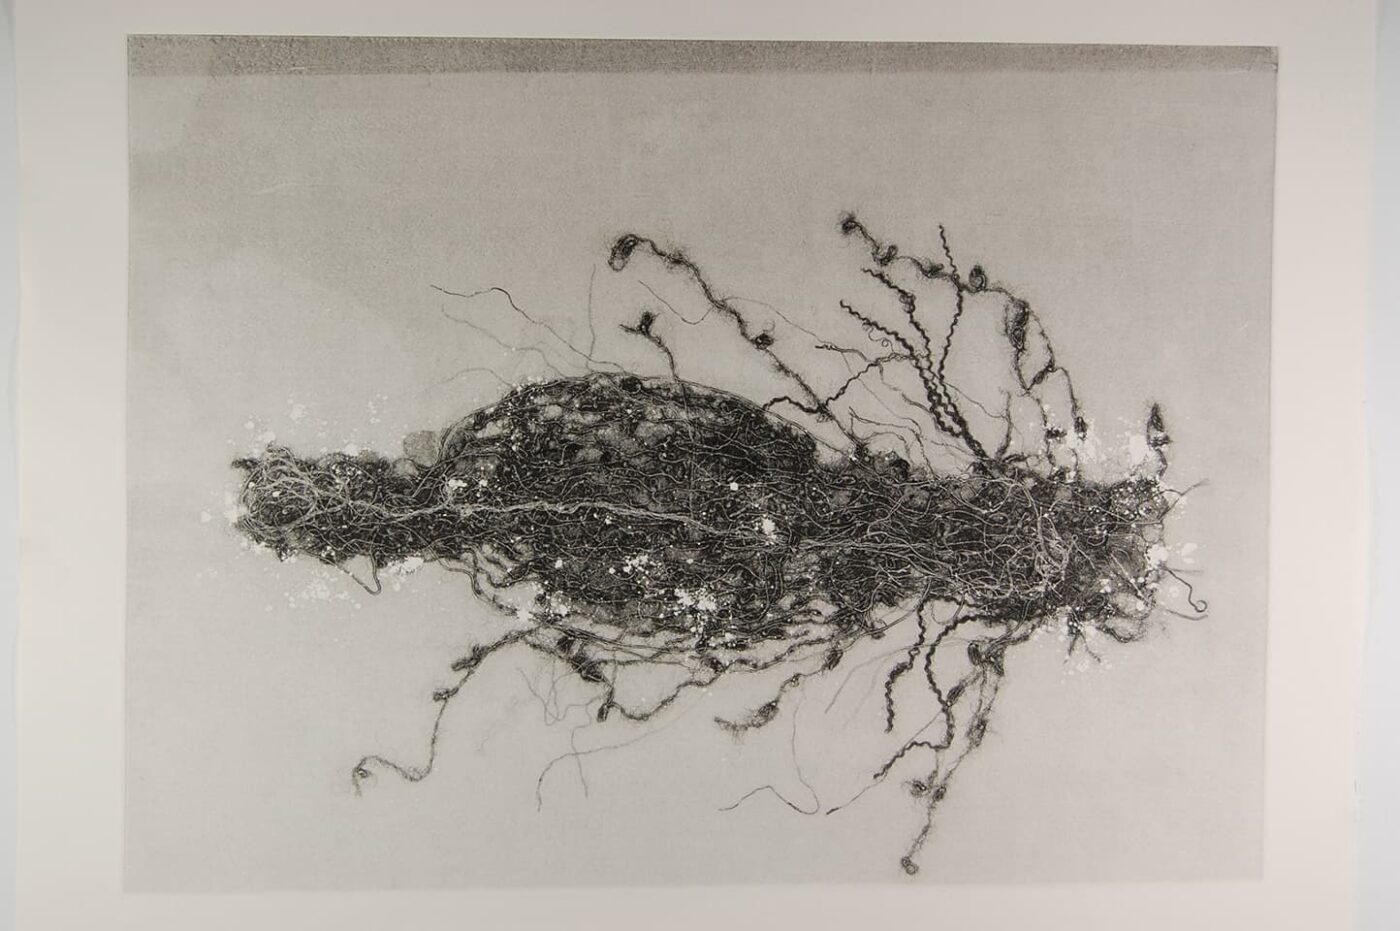 <strong>Out of Body 2.3</strong>, Susan Aldworth, monoprint, 56 x 76 cms, 2009.